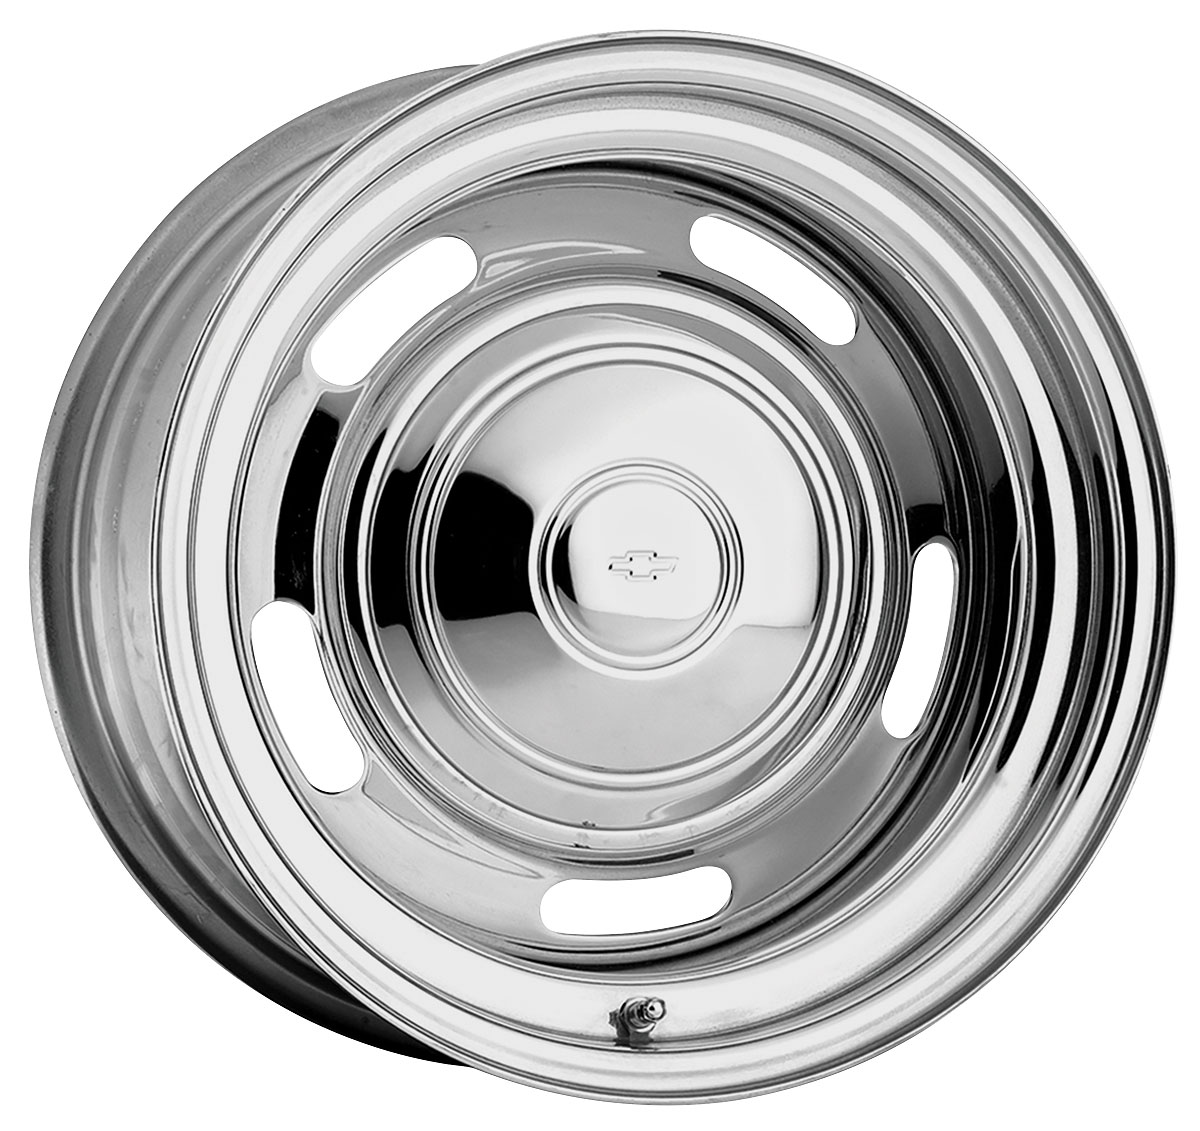 "14 Buick Rally Wheels >> U.S. Wheel 1964-77 Chevelle Wheel, Rally (Chrome) 14"" Wheels X 7"" (BS 4"") @ OPGI.com"